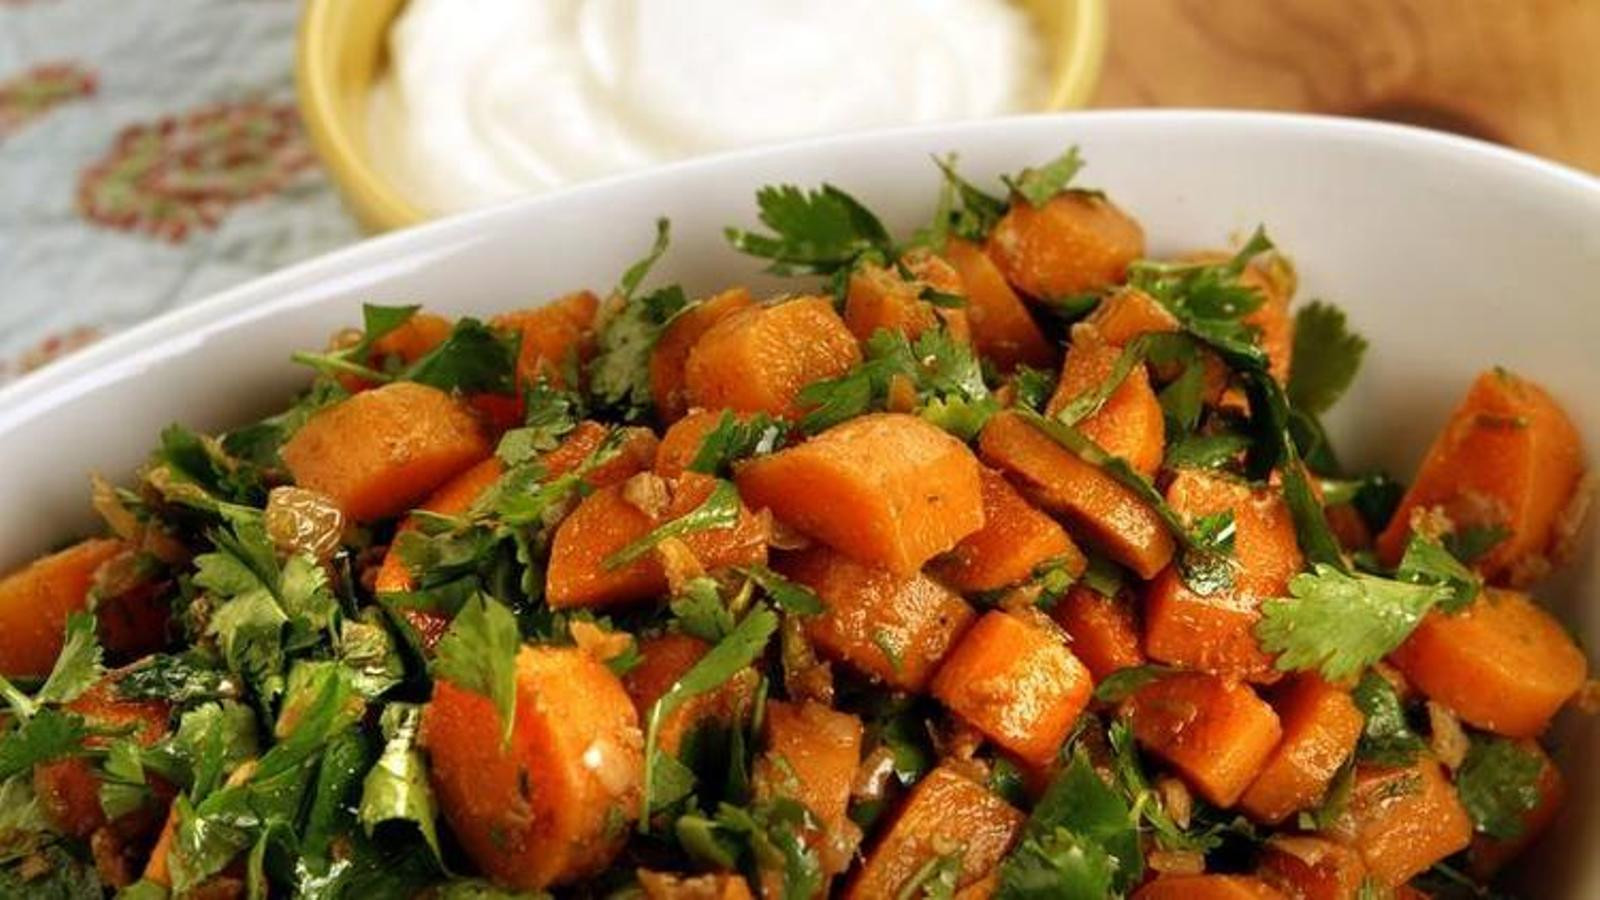 Carrot Salad Recipes  Try this spicy Moroccan carrot salad recipe for Meatless